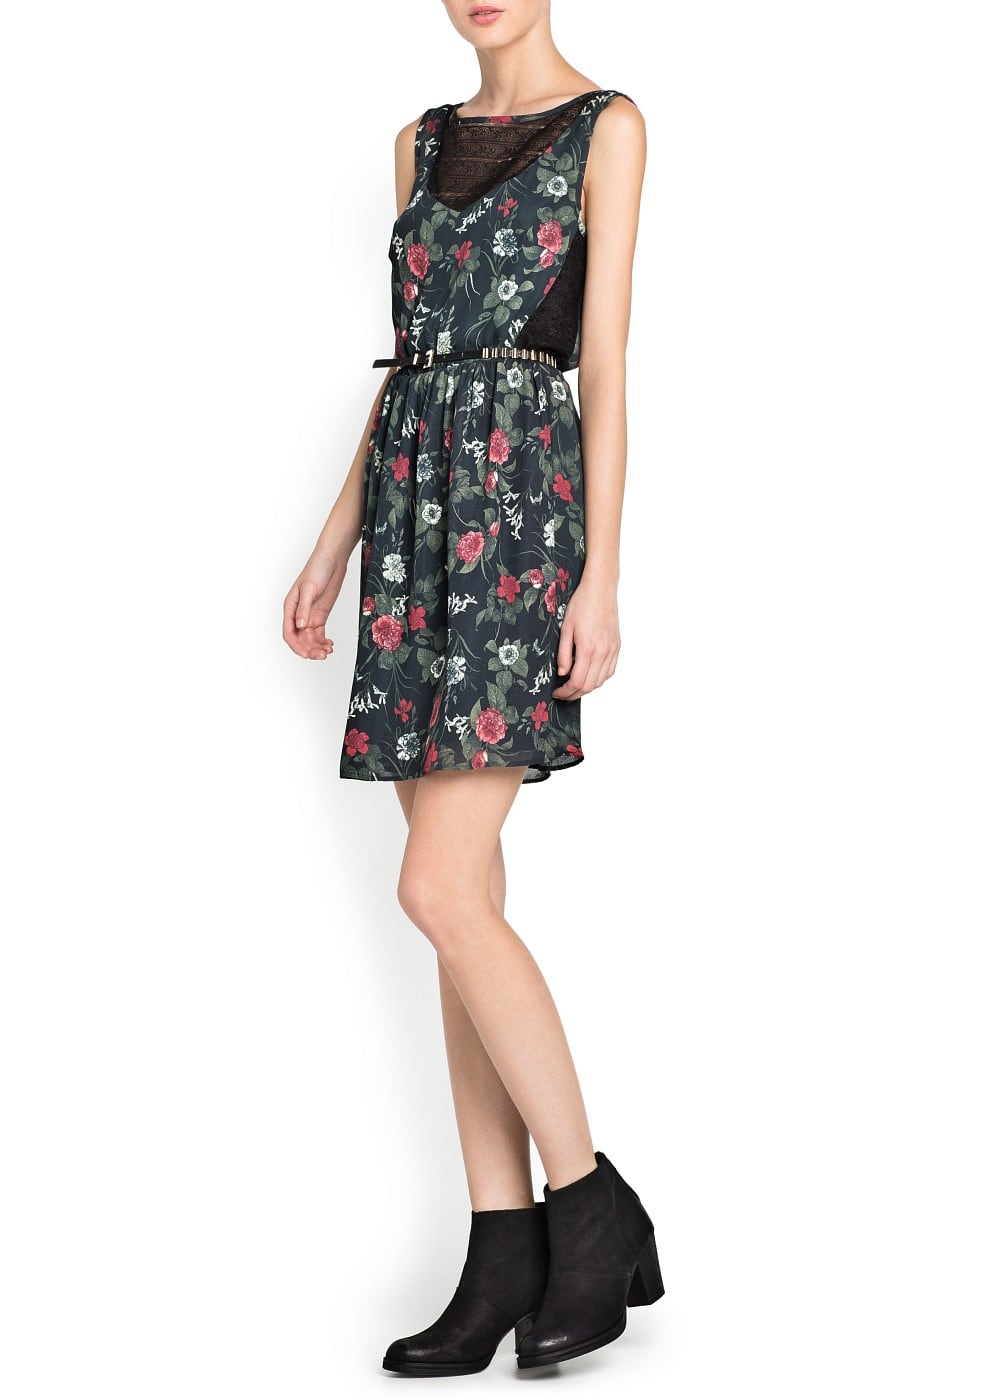 Lace panels floral dress